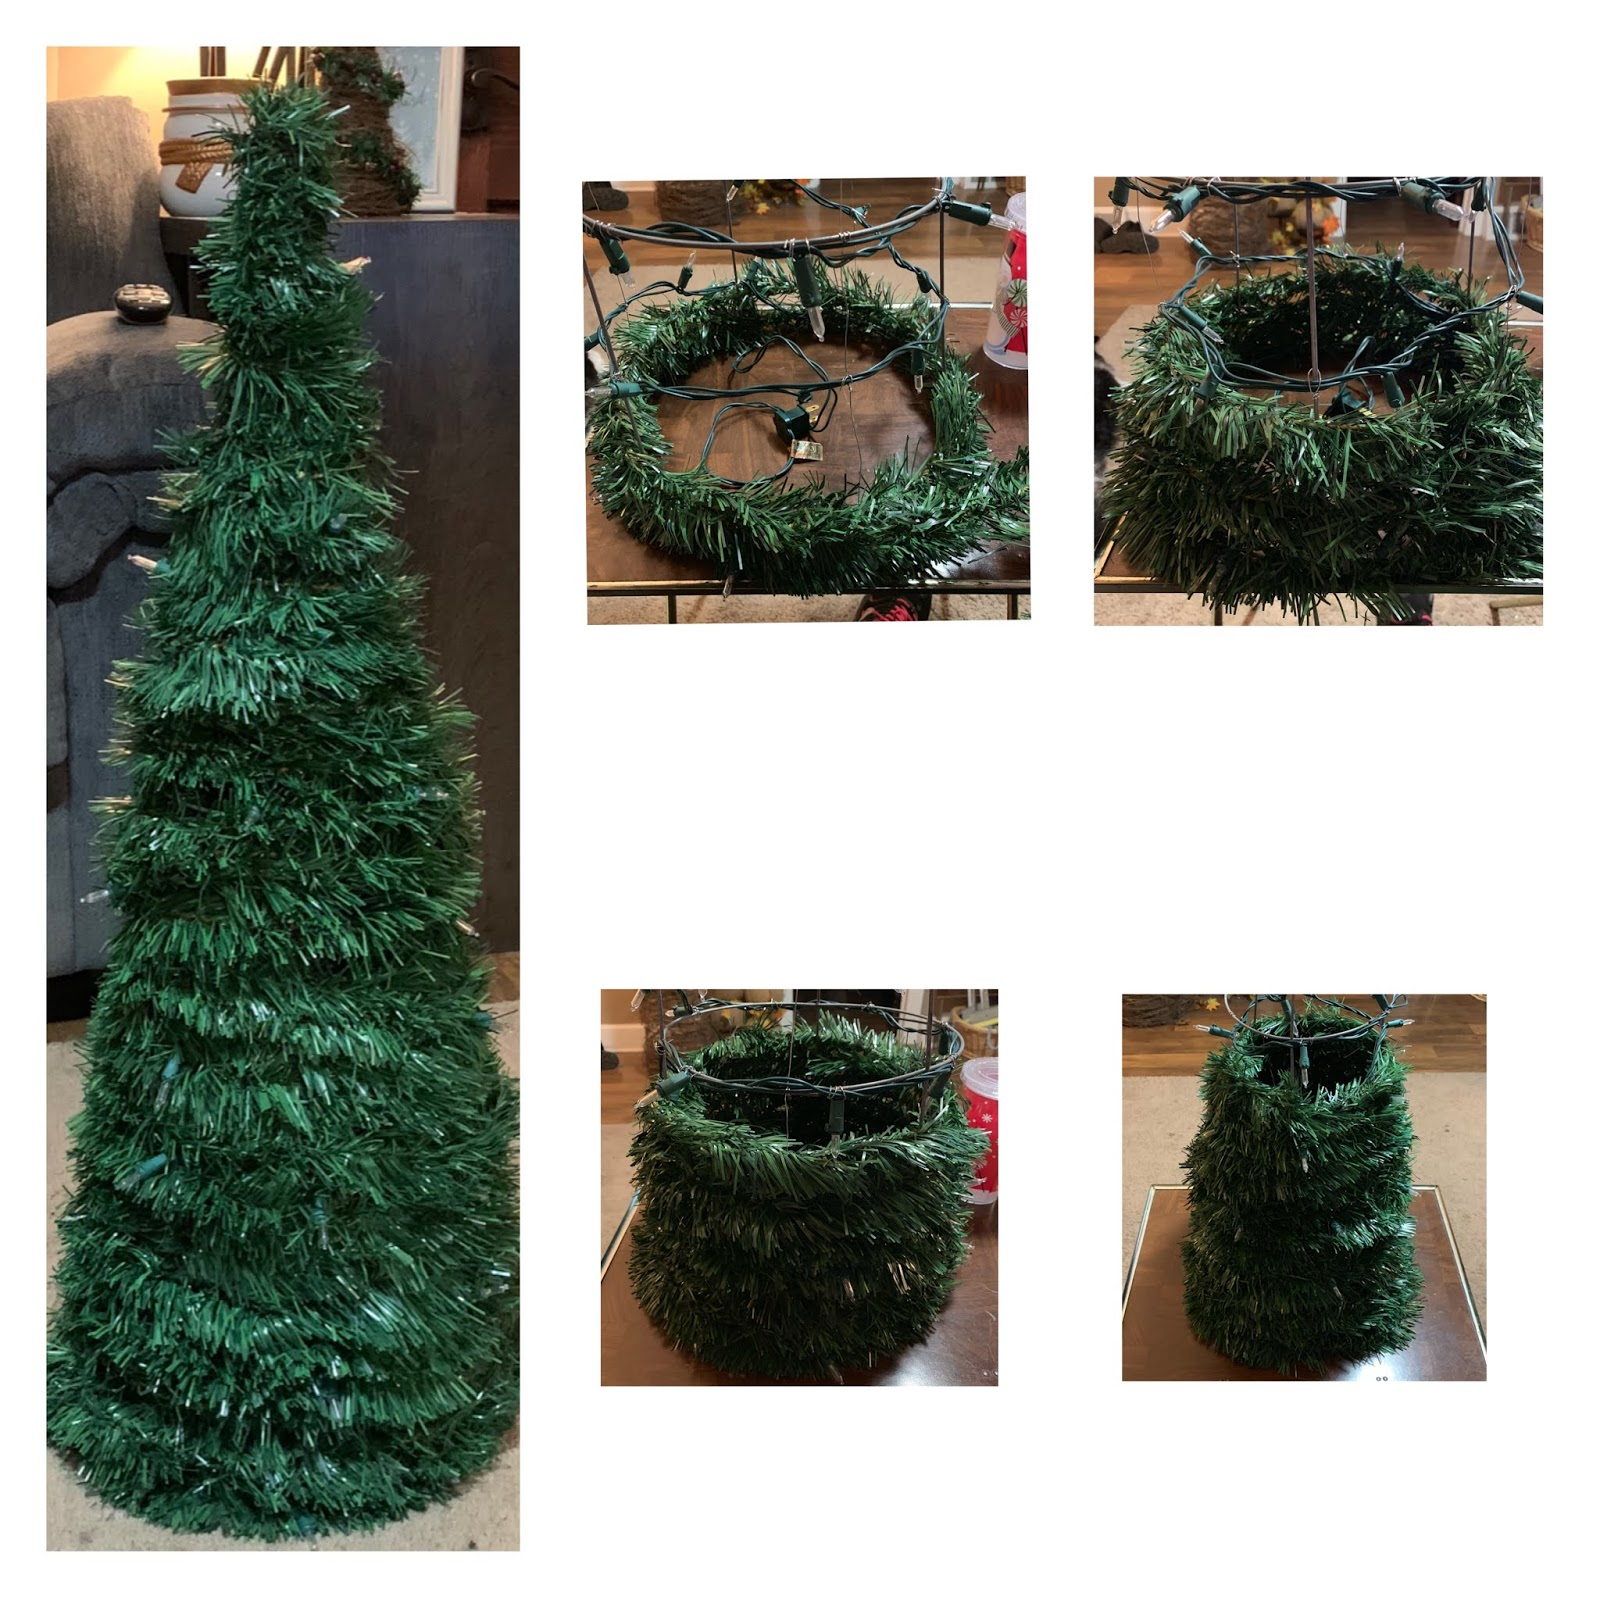 Christmas Trees Made From Tomato Cages: Tomato Cage Small Christmas Tree {DIY} Dollar Tree